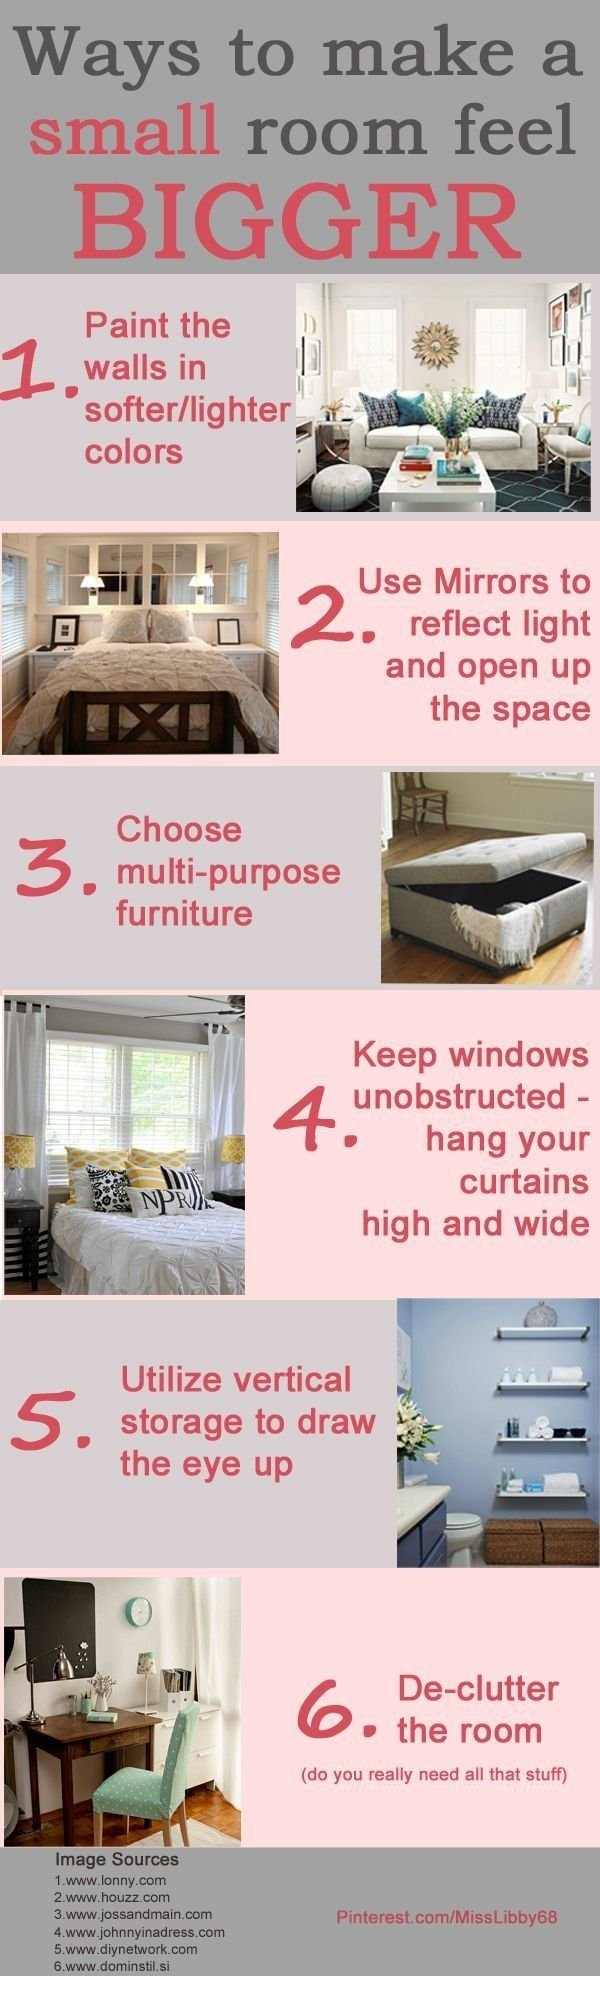 10 Pretty Ideas To Spice Up The Bedroom For Her